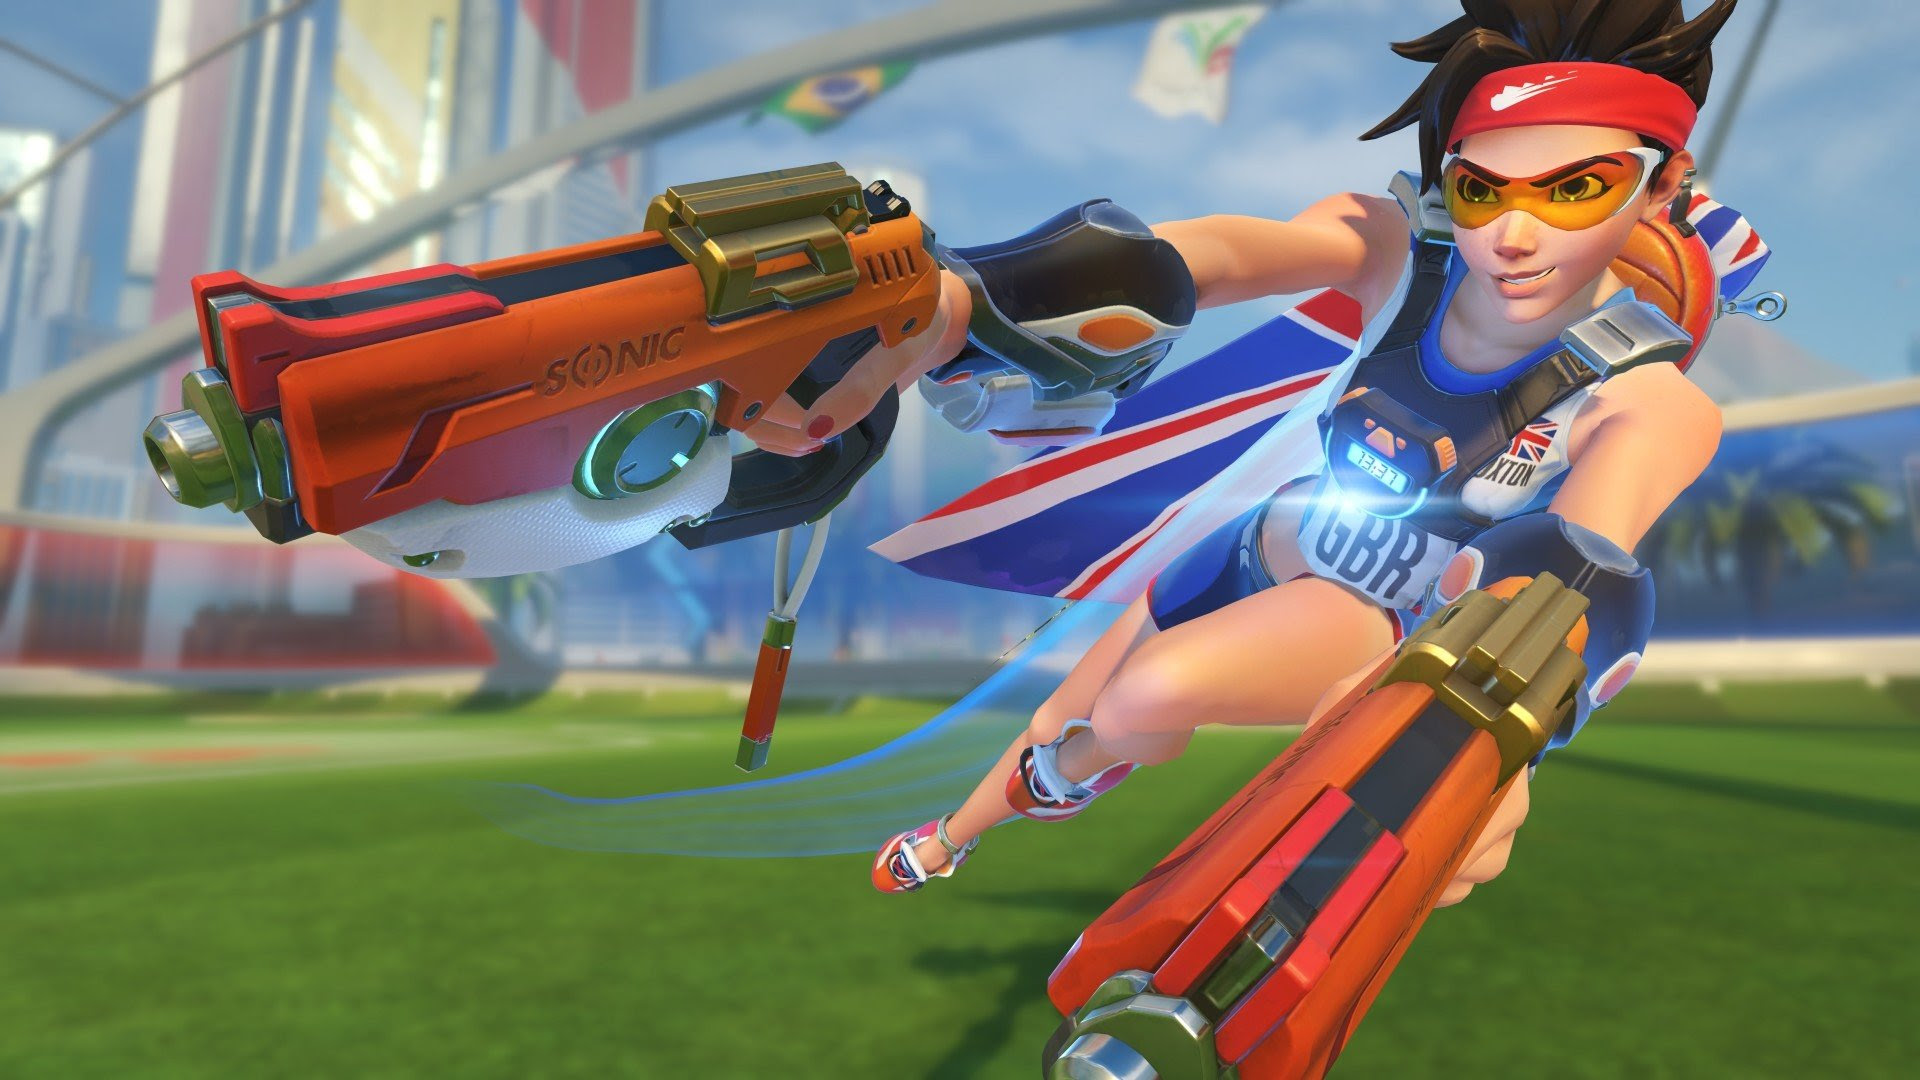 Overwatch Summer Games returning next week screenshot